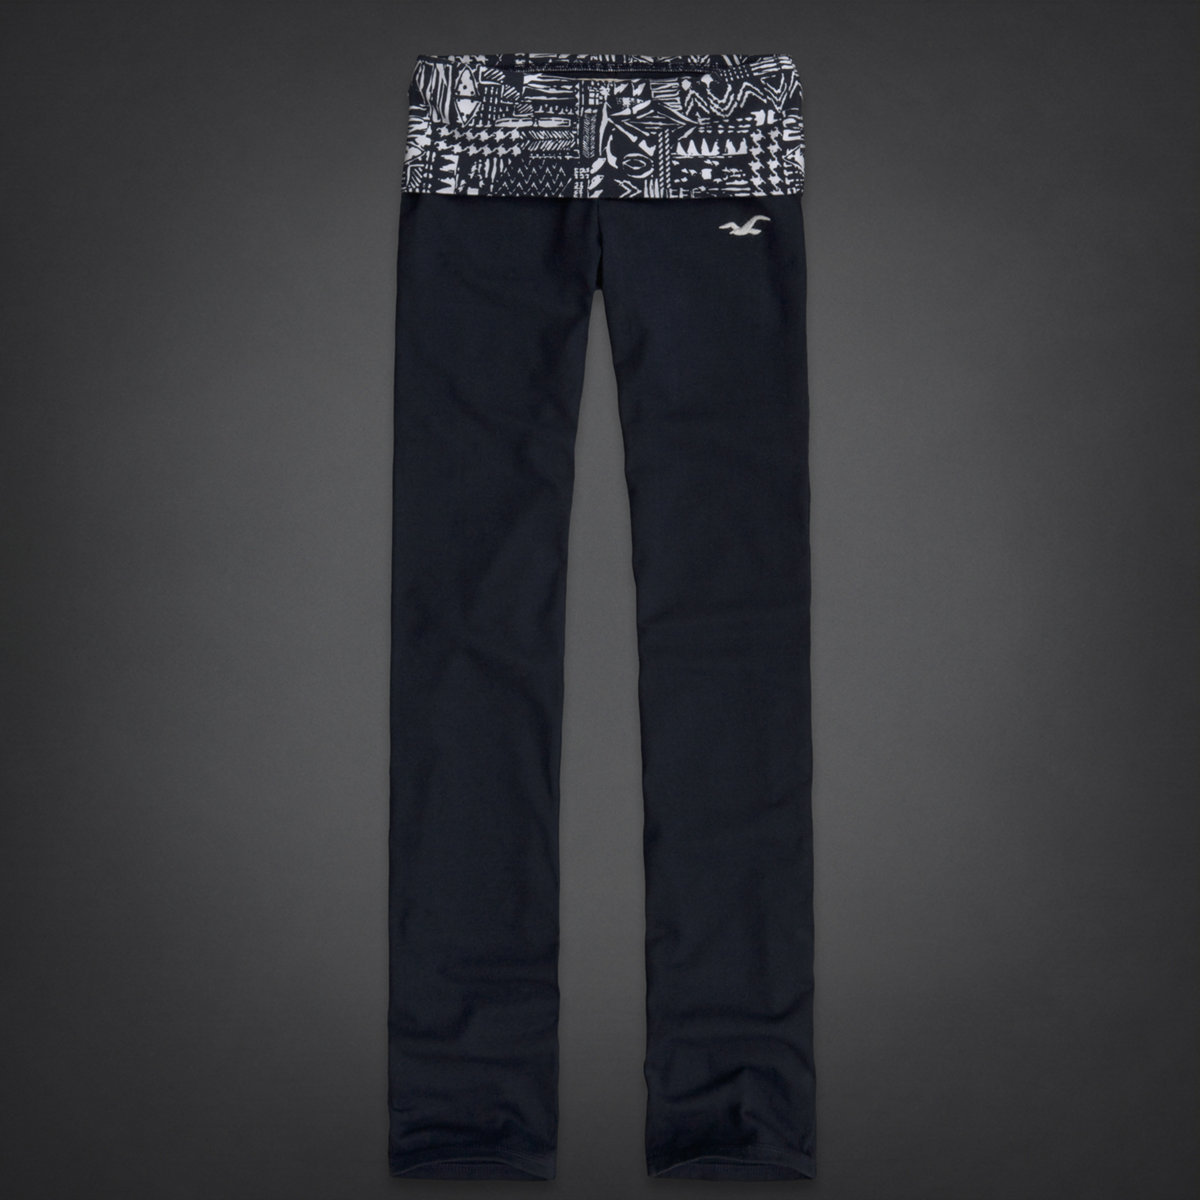 Hollister Classic Yoga Pants From Hollister Co